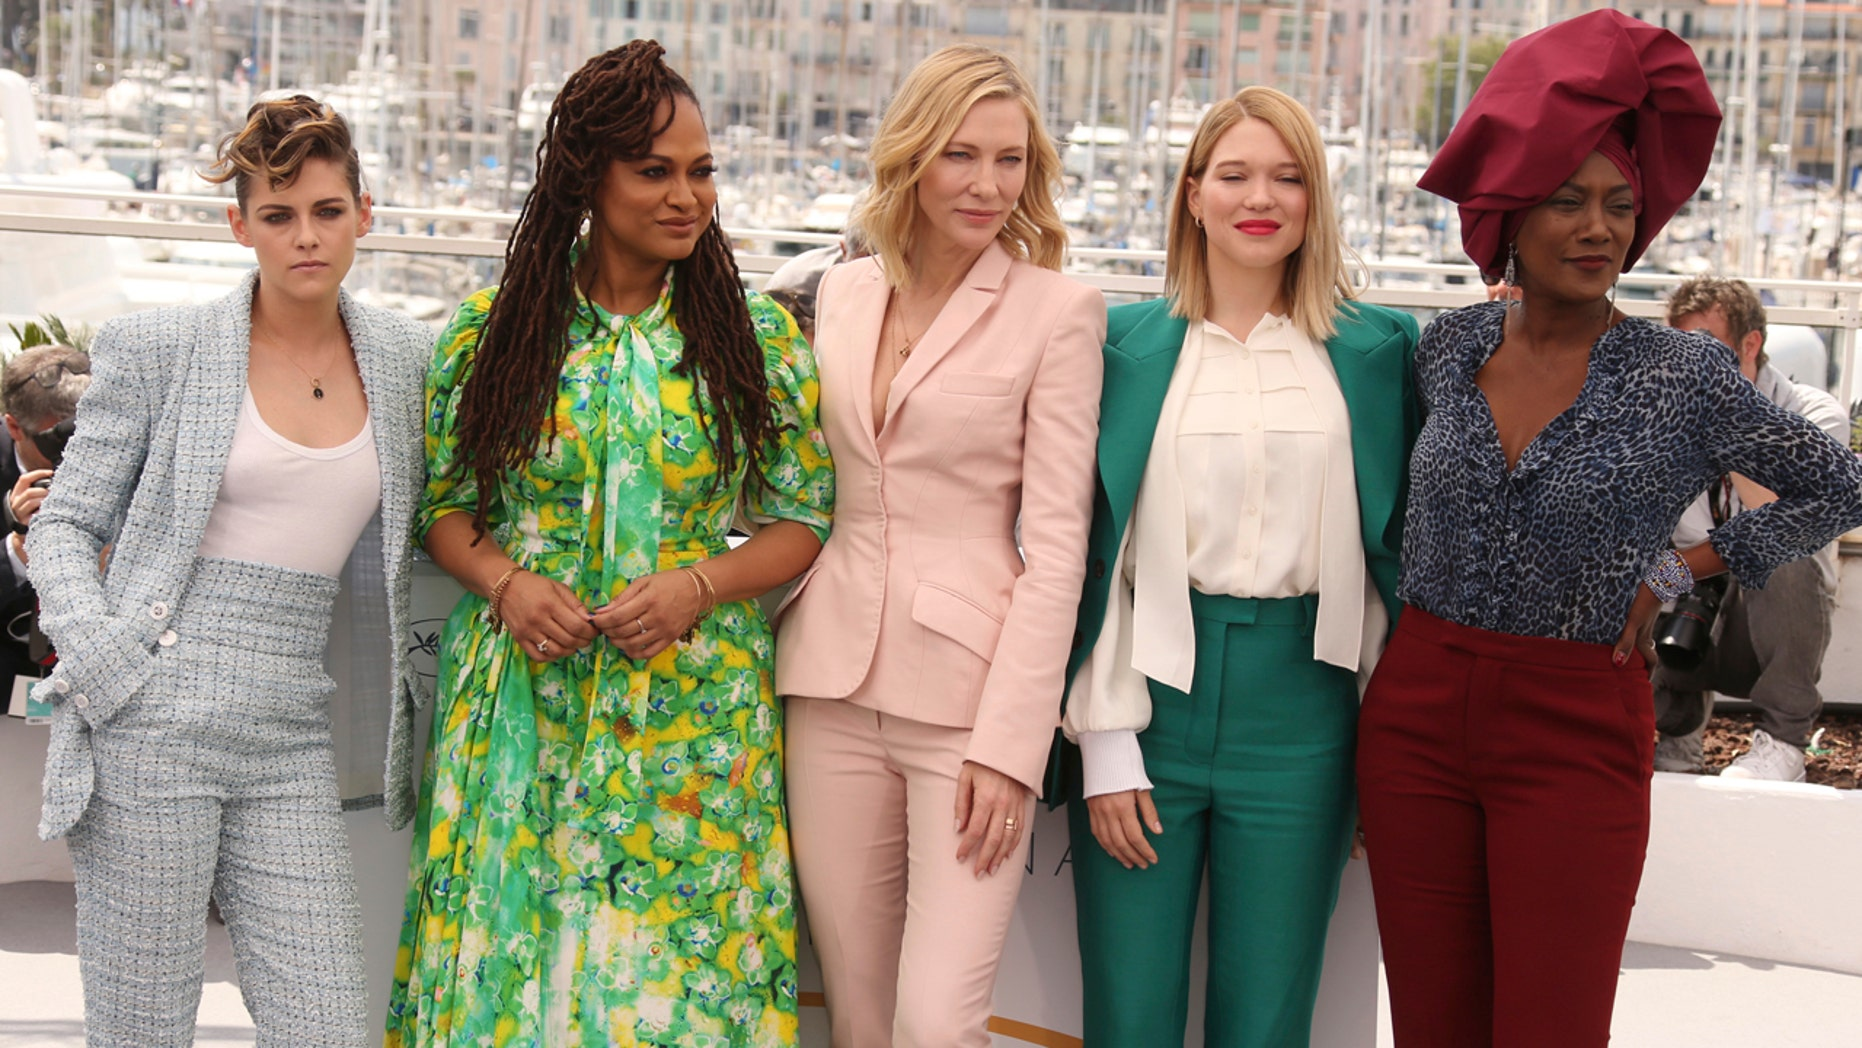 Cannes Film Festival jurors, Cate Blanchett, Kristen Stewart, Ava DuVernay, Lea Seydoux and Burundian singer Khadja Nin, are expected to be some of the women taking part in the Saturday protest.